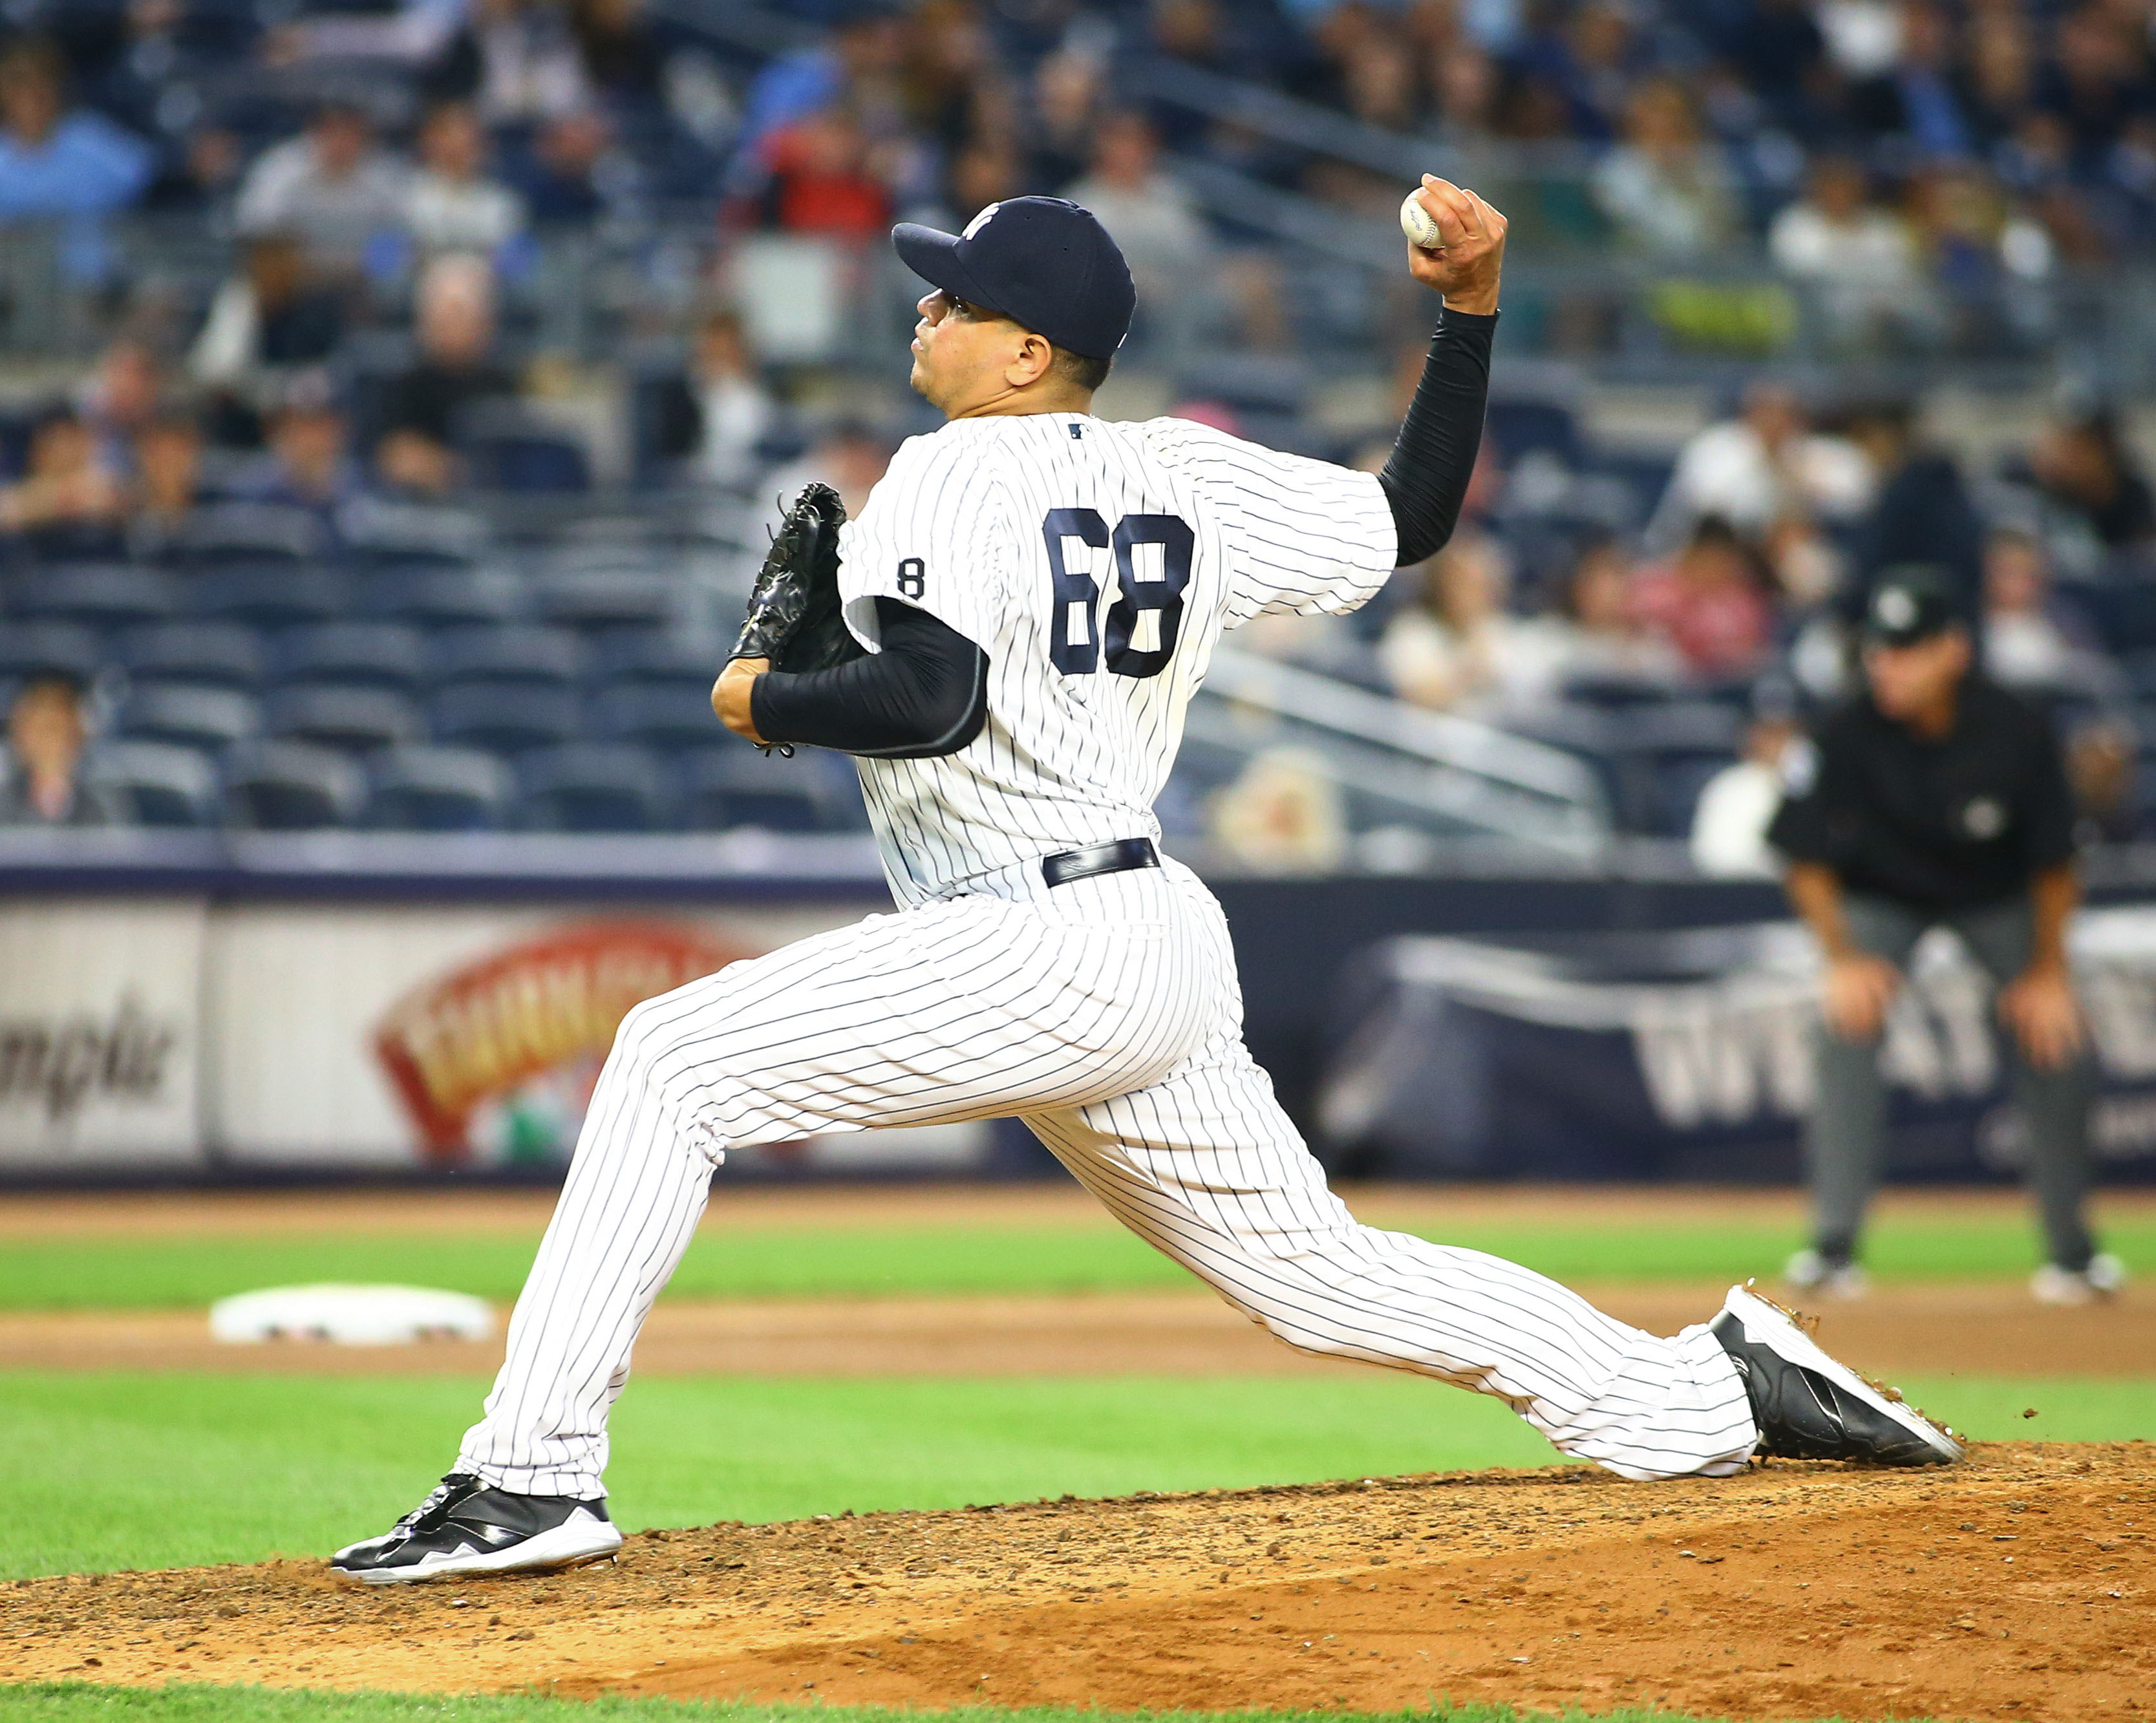 Dellin Betances signed a deal with Motus Global in April to endorse their motusTHROW system.